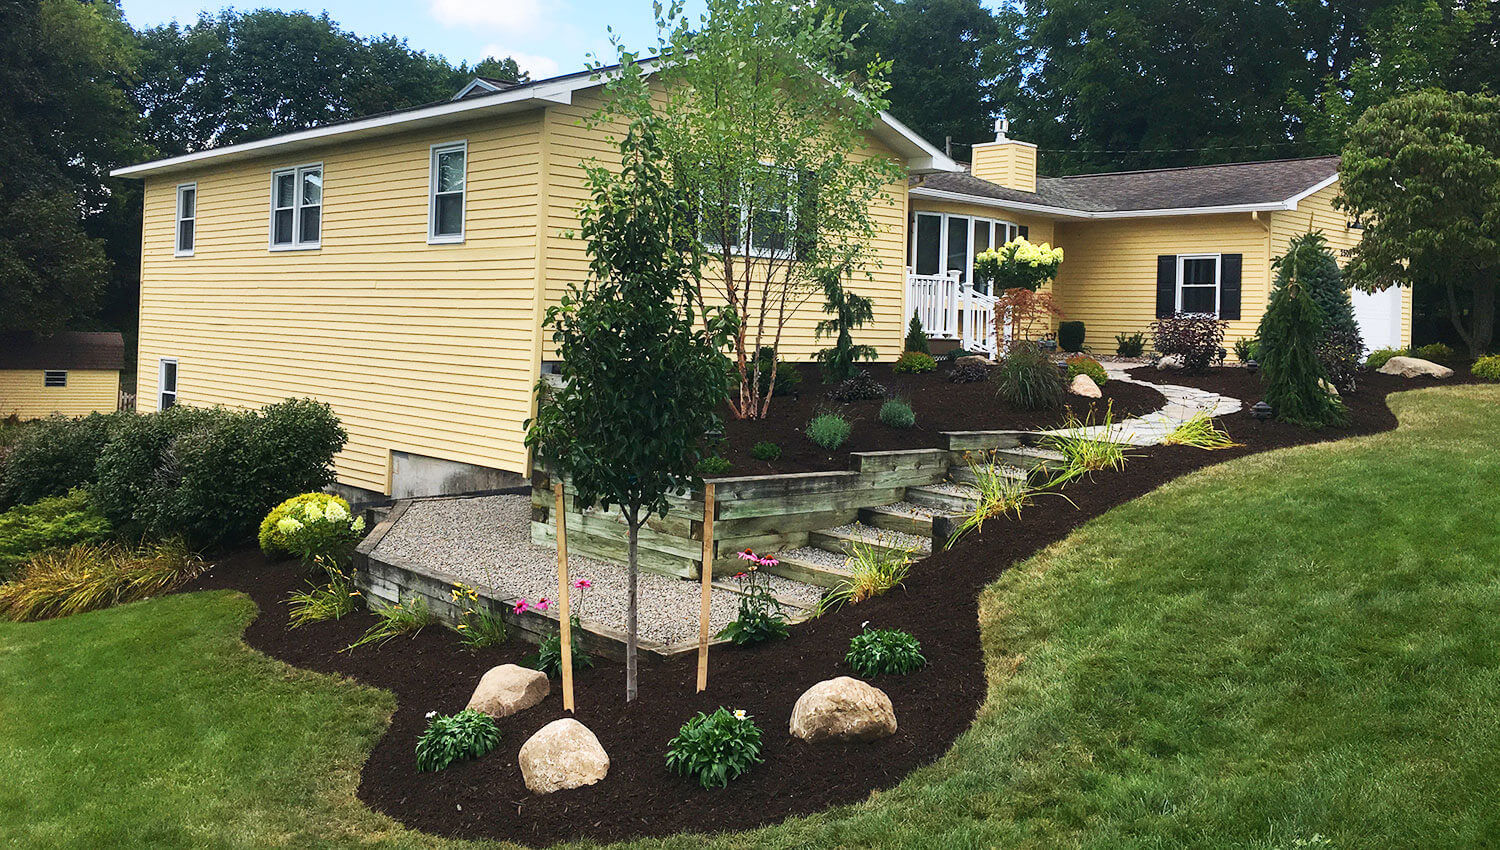 Outdoor Landscape Design-Amarillo TX Landscape Designs & Outdoor Living Areas-We offer Landscape Design, Outdoor Patios & Pergolas, Outdoor Living Spaces, Stonescapes, Residential & Commercial Landscaping, Irrigation Installation & Repairs, Drainage Systems, Landscape Lighting, Outdoor Living Spaces, Tree Service, Lawn Service, and more.